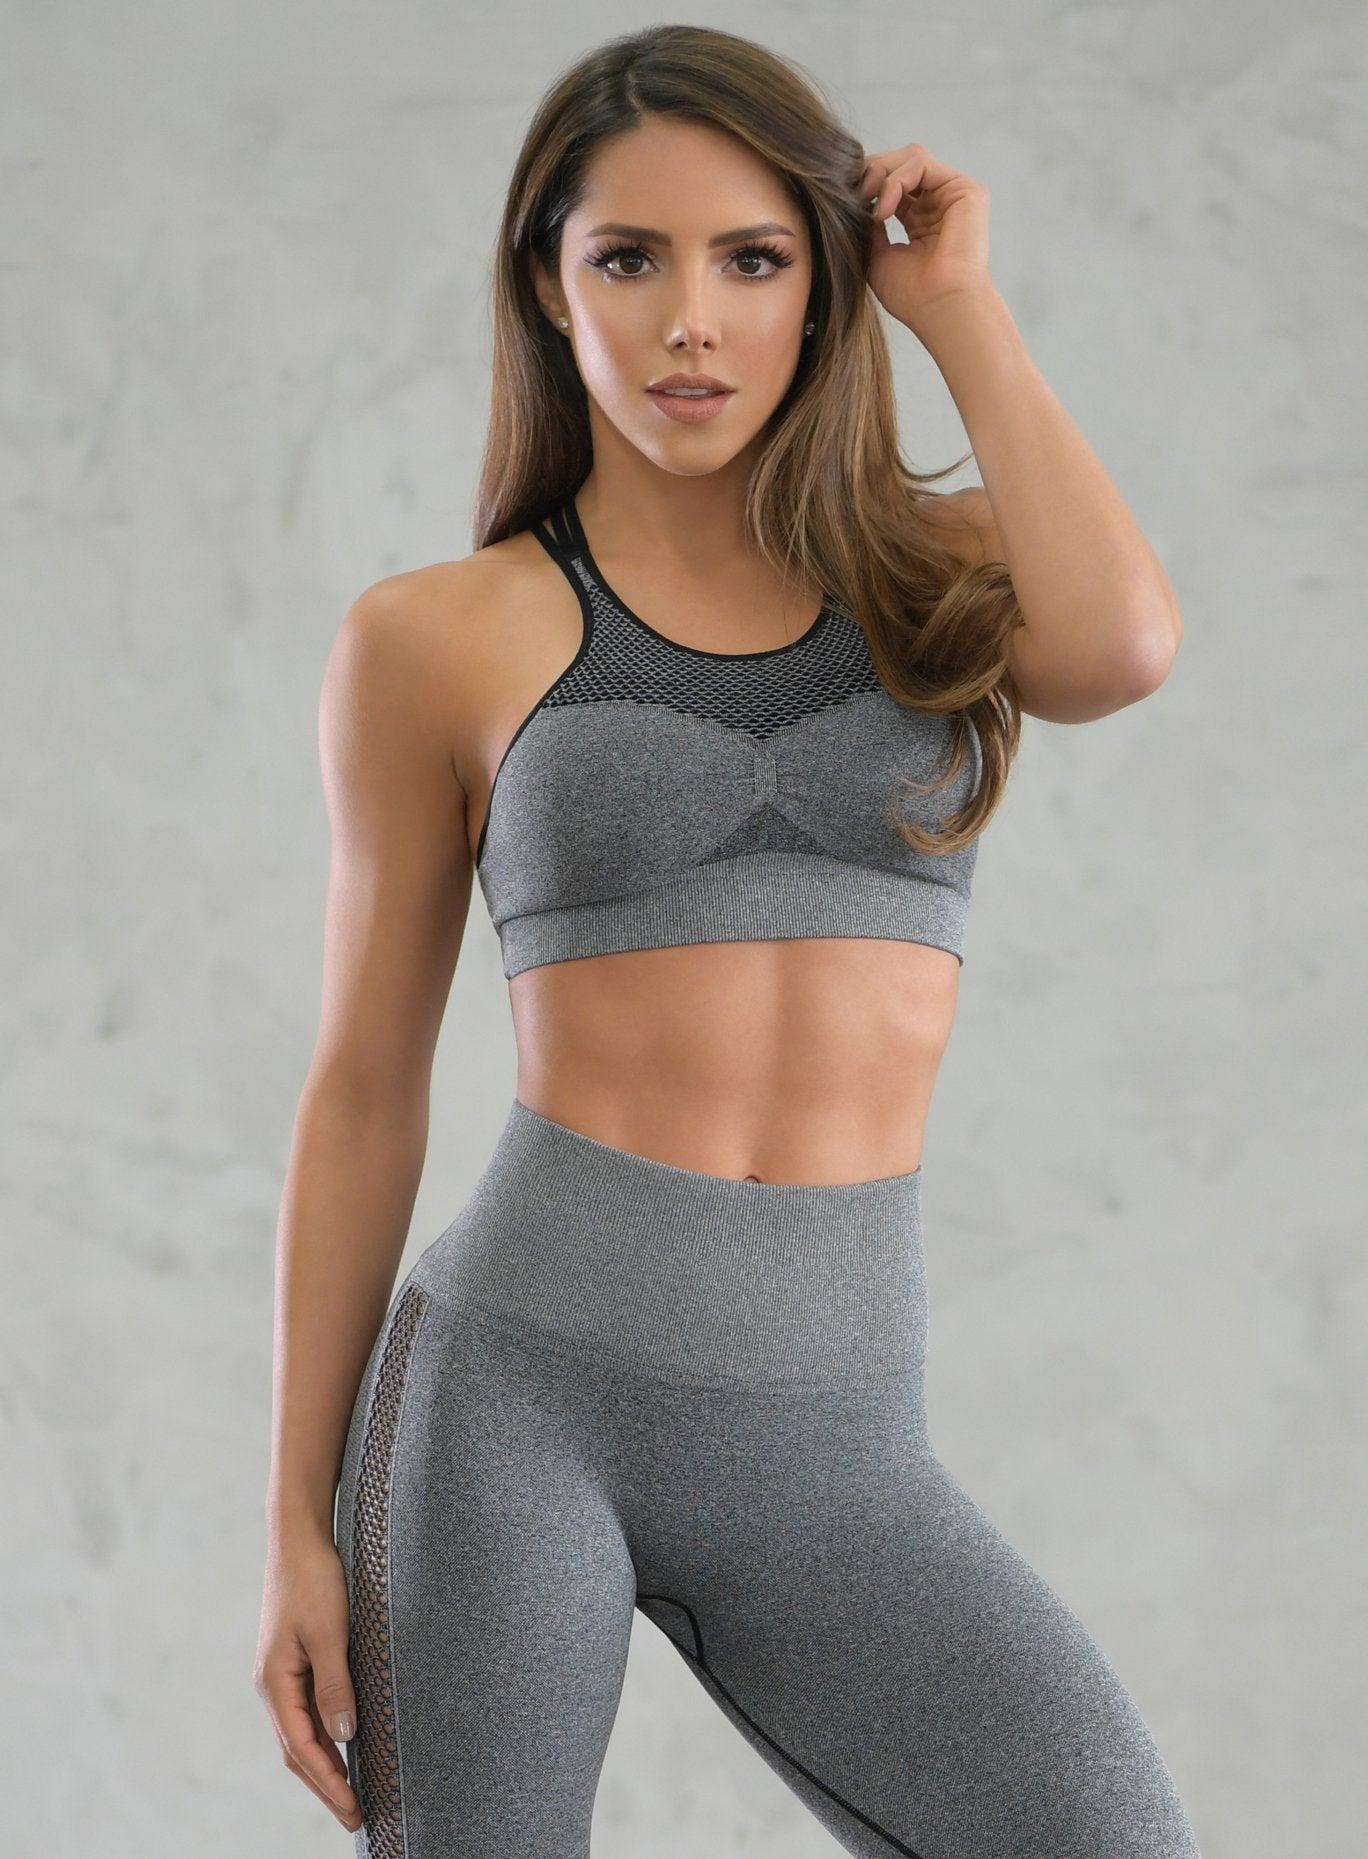 8a618498f7 Cute Workout Sports Bras.jpg v 1552174455